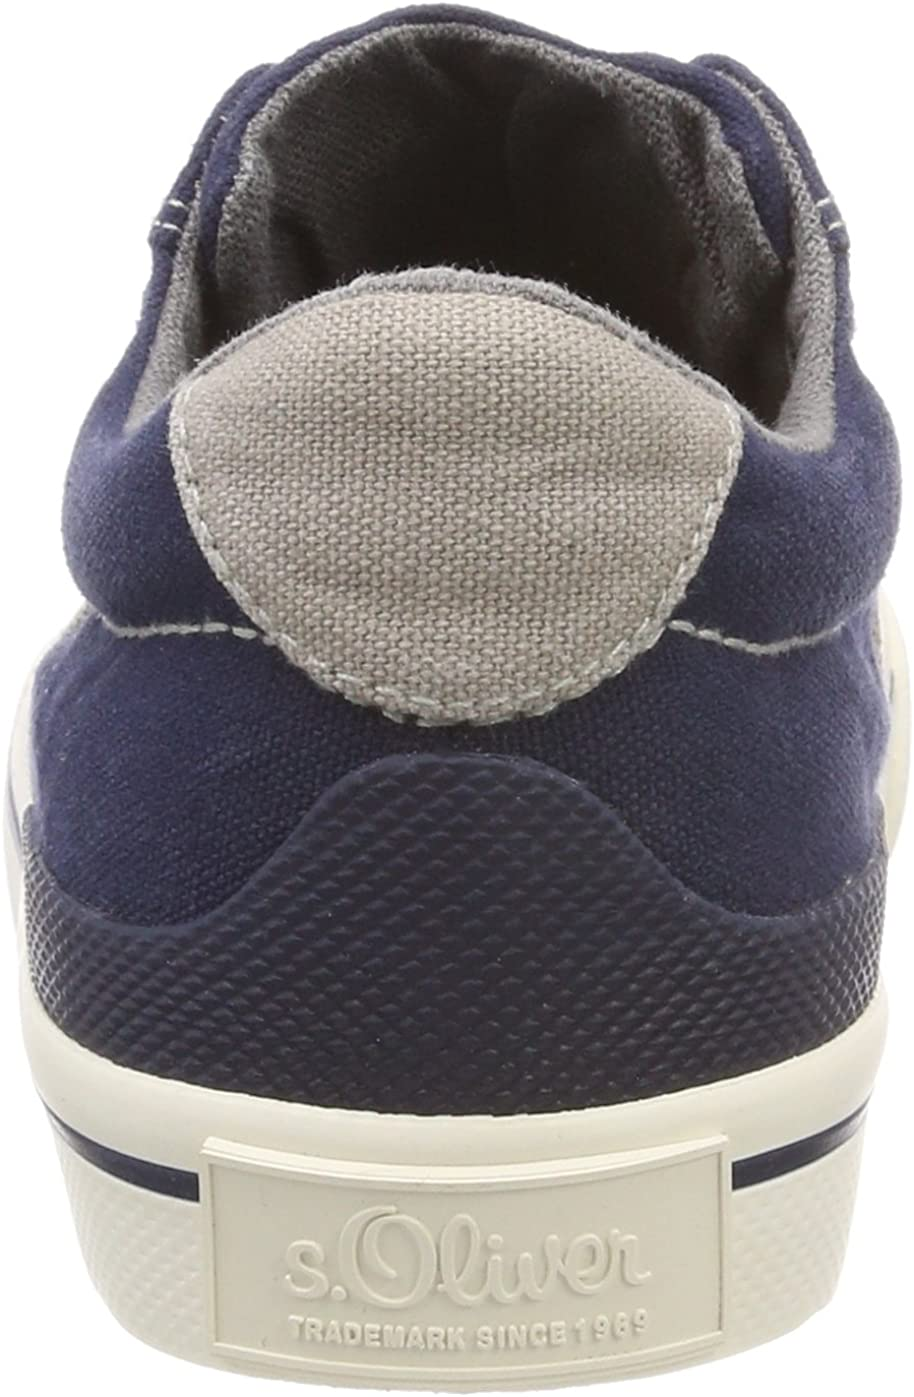 s.Oliver Boys 44100 Slip on Trainers